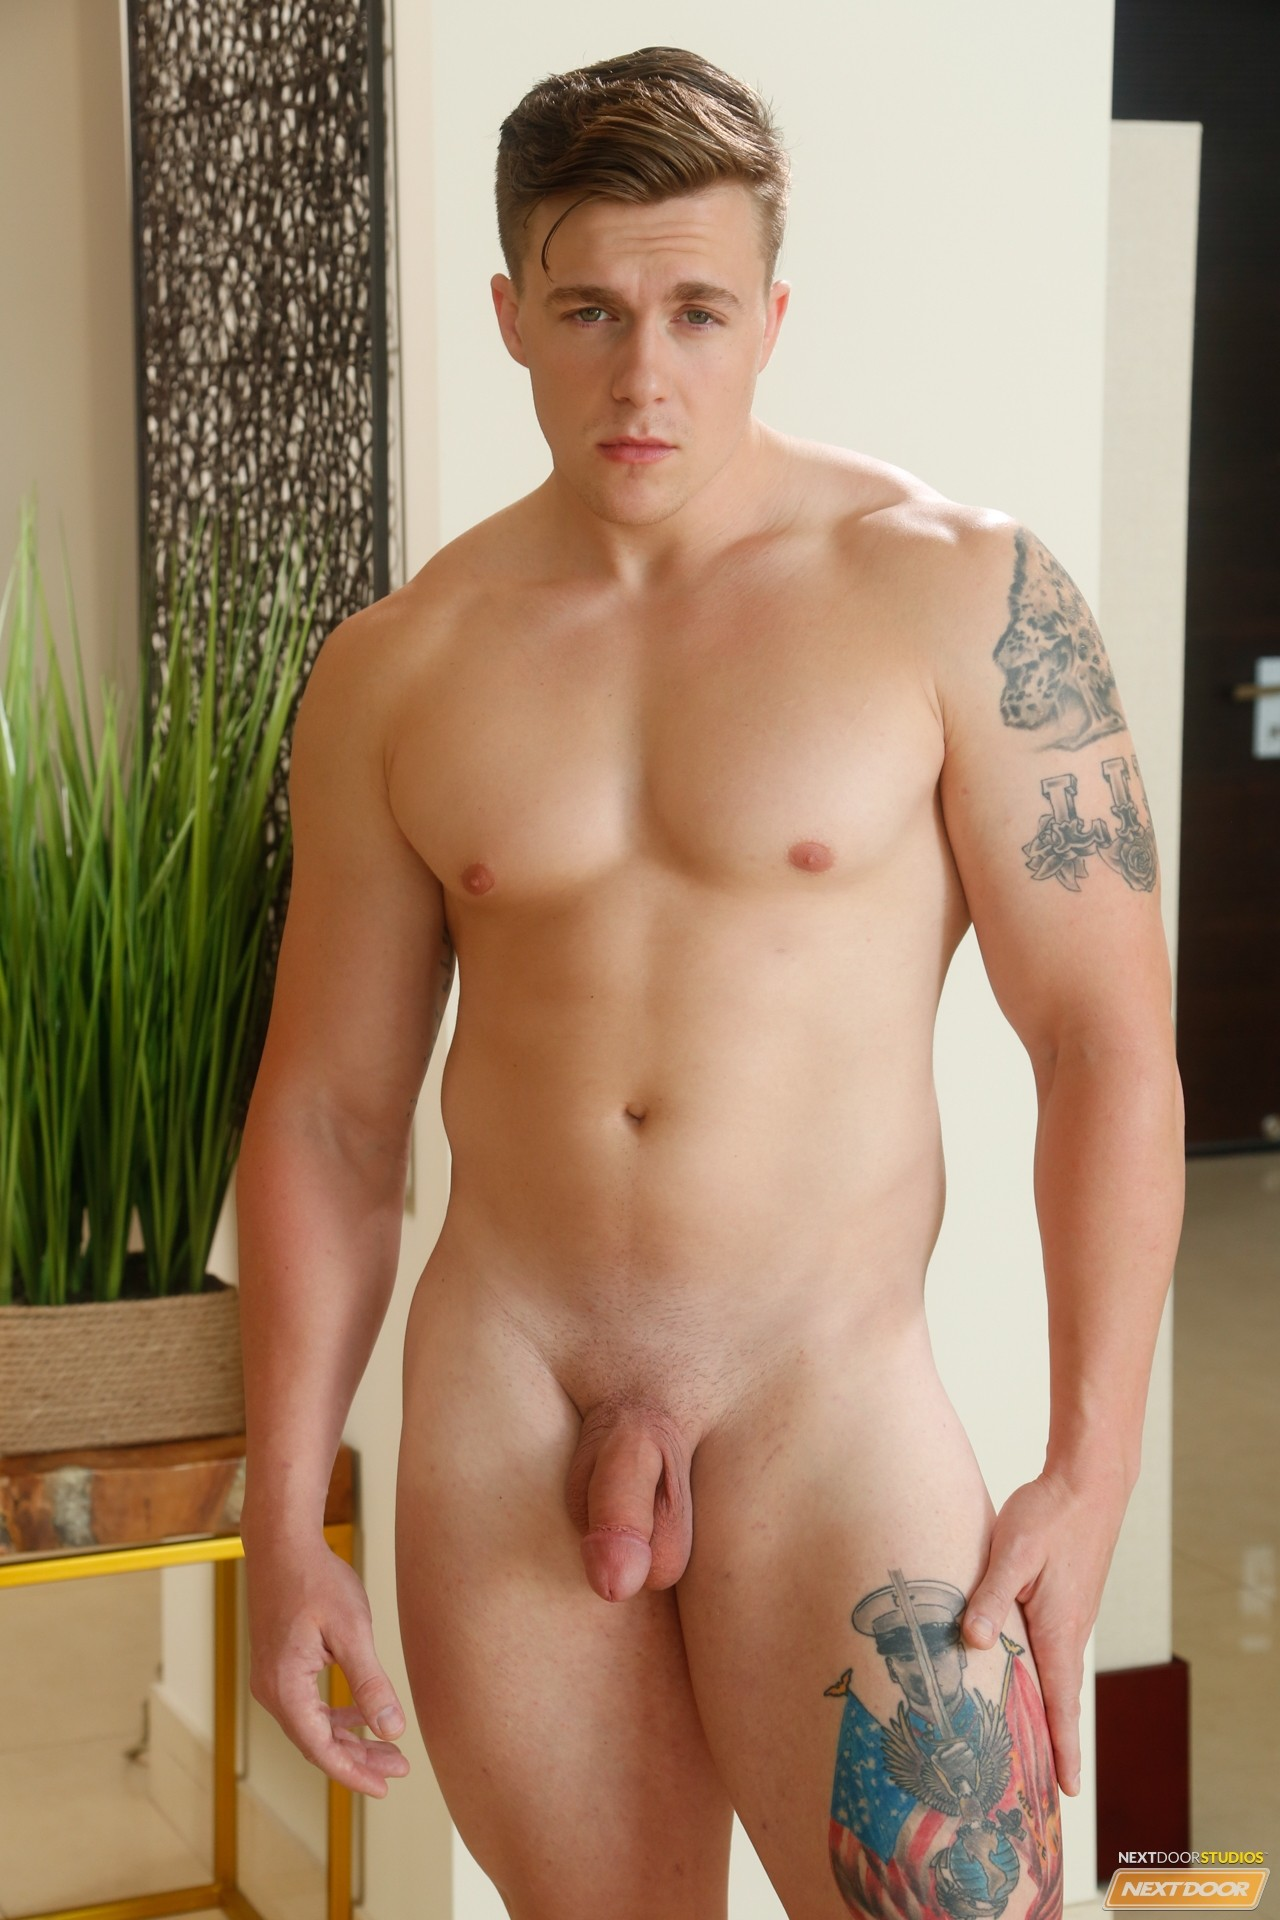 Nude guys next door